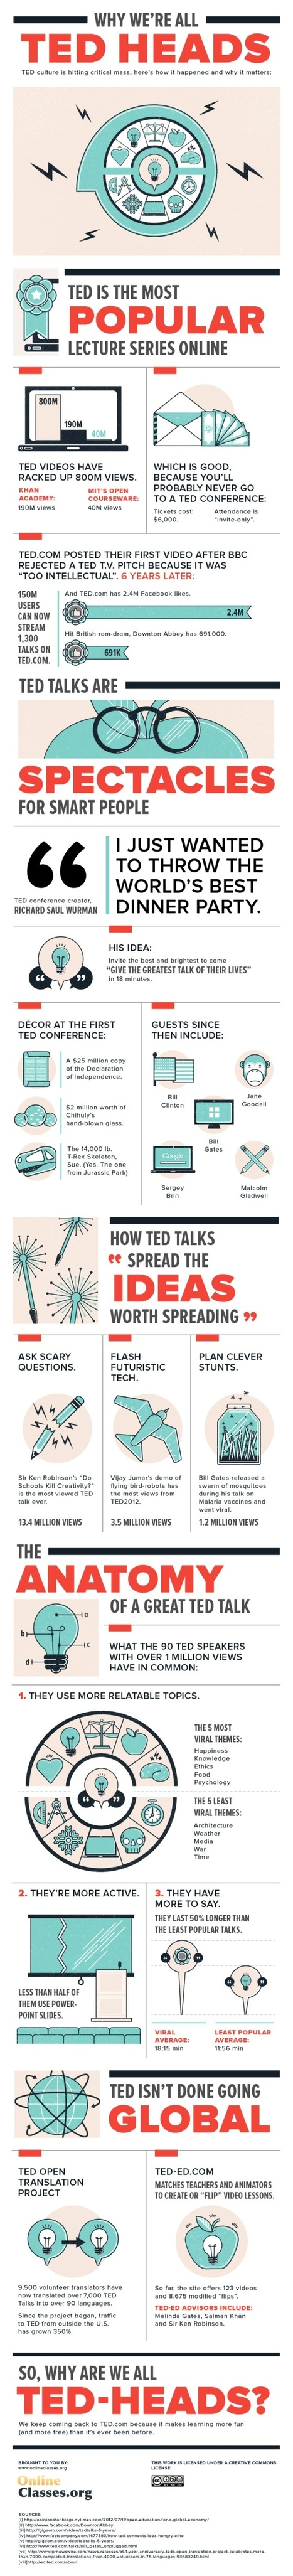 Why we love Ted talks - infographic | Content Curation: Emerging Career | Scoop.it